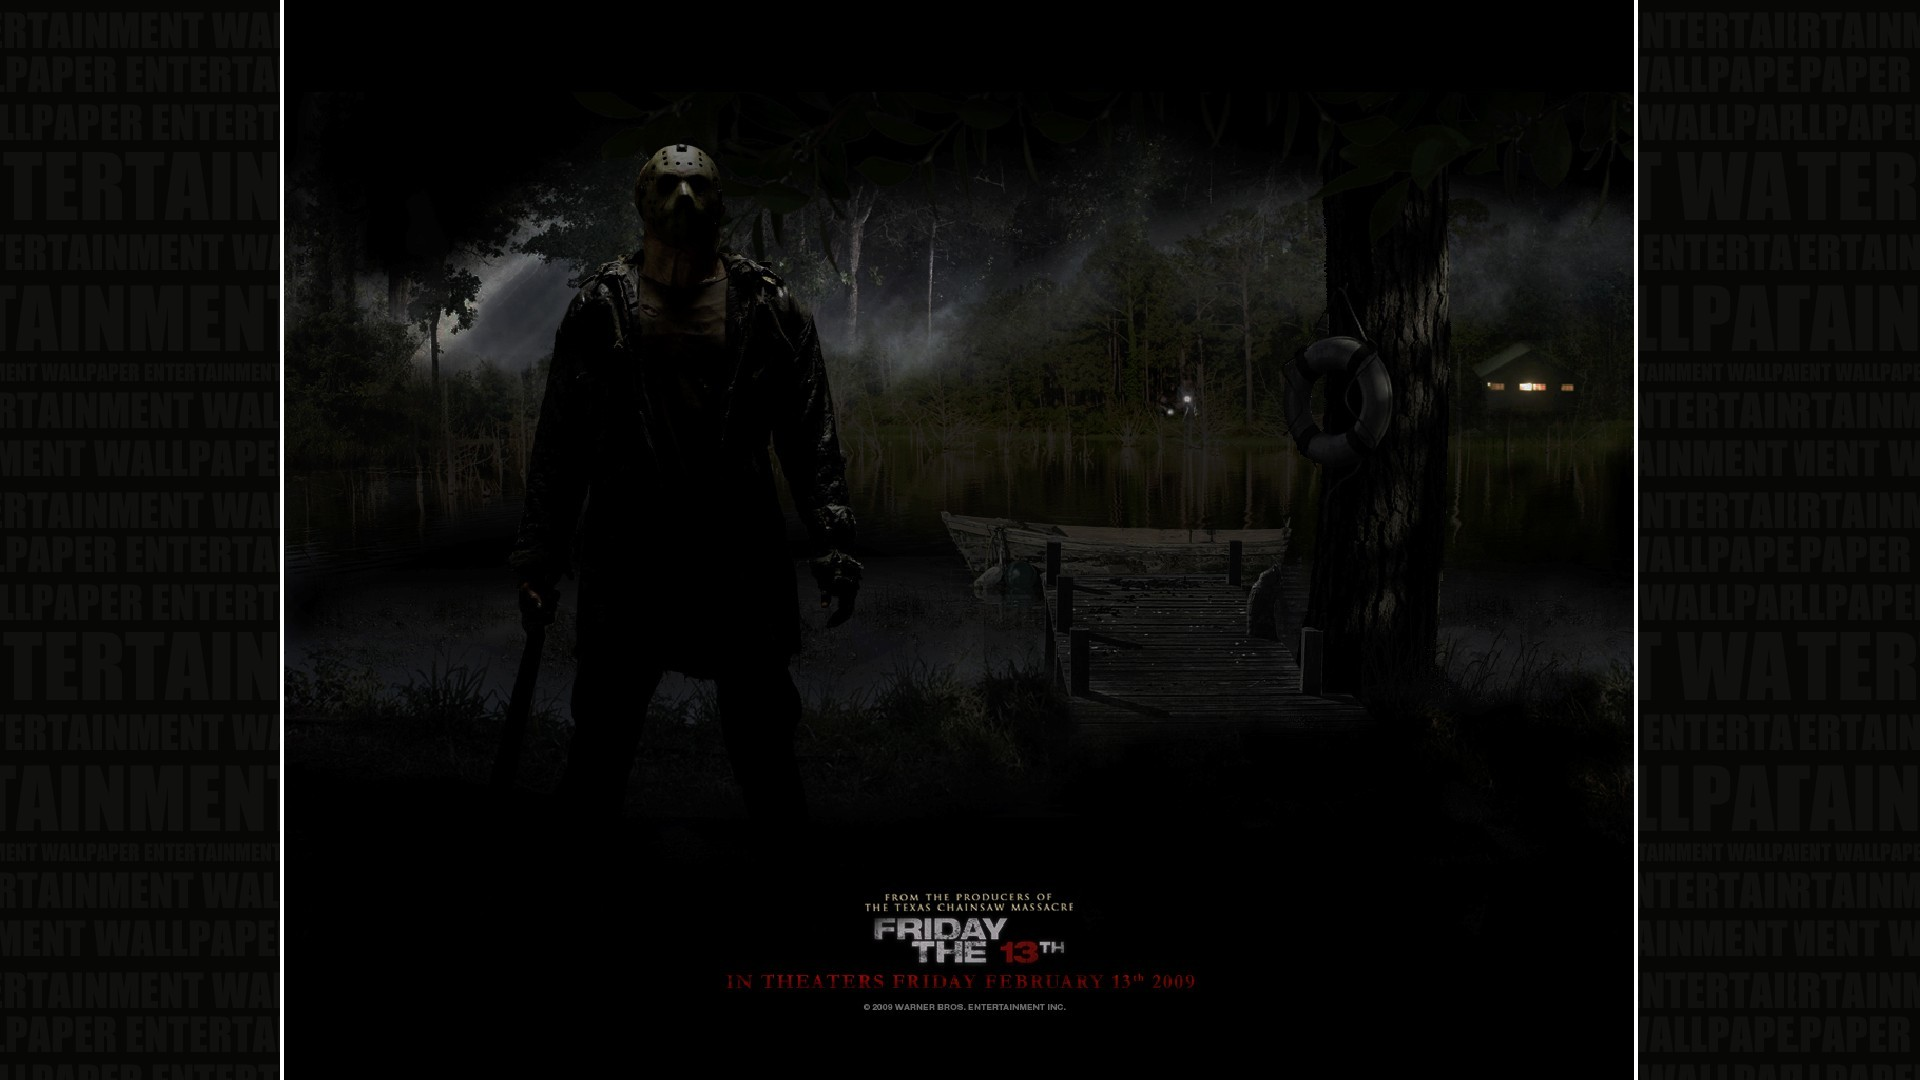 1920x1080 Friday the 13th Wallpaper - Original size, download now.